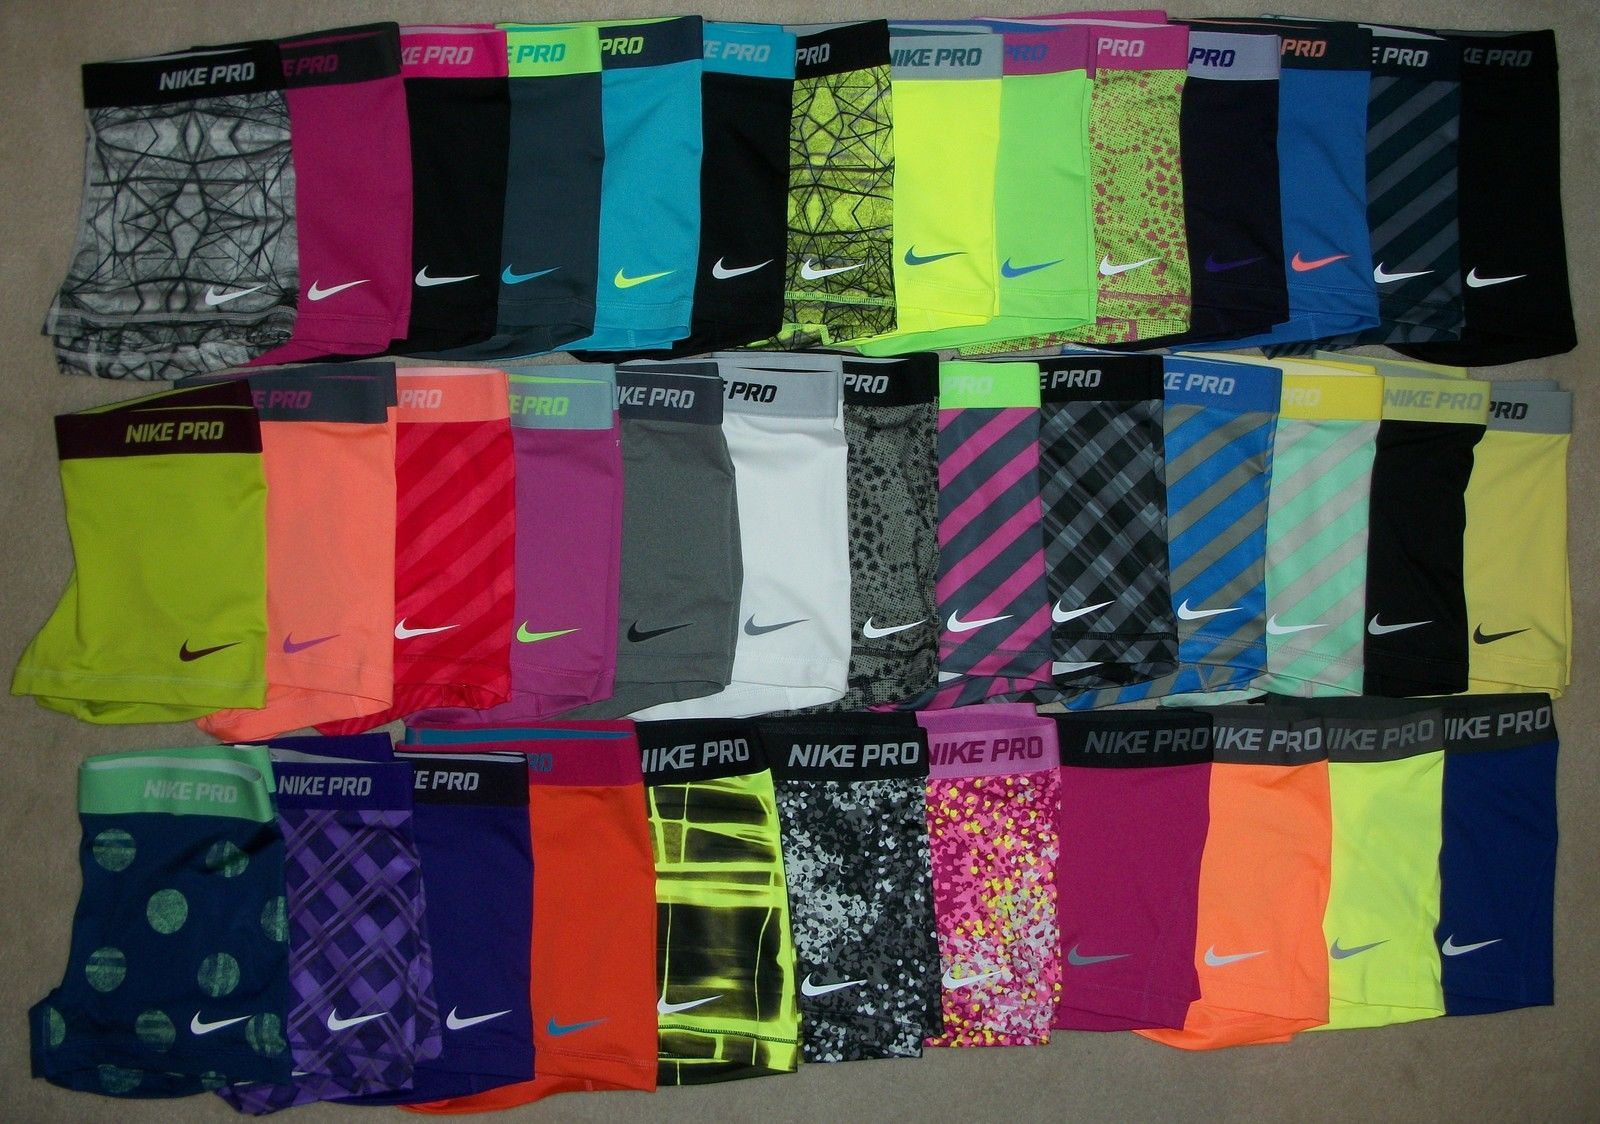 Nike Pro Core Essential Compression Shorts 2 5 1 Pair Spandex Yoga Tights Ebay Nike Pros Volleyball Spandex Nike Pro Shorts